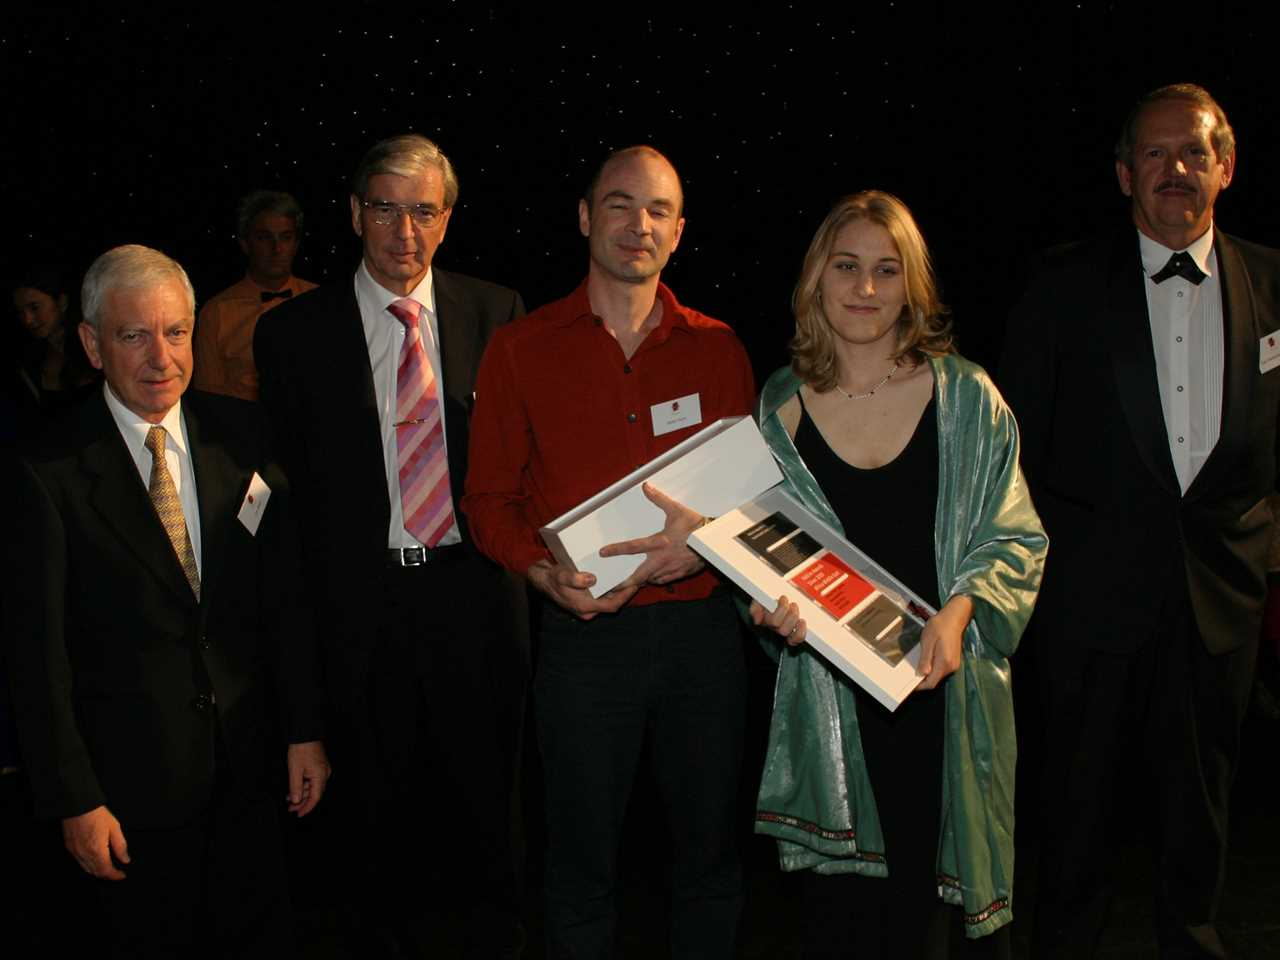 Holcim Awards ceremony for Africa Middle East – Johannesburg, South Africa